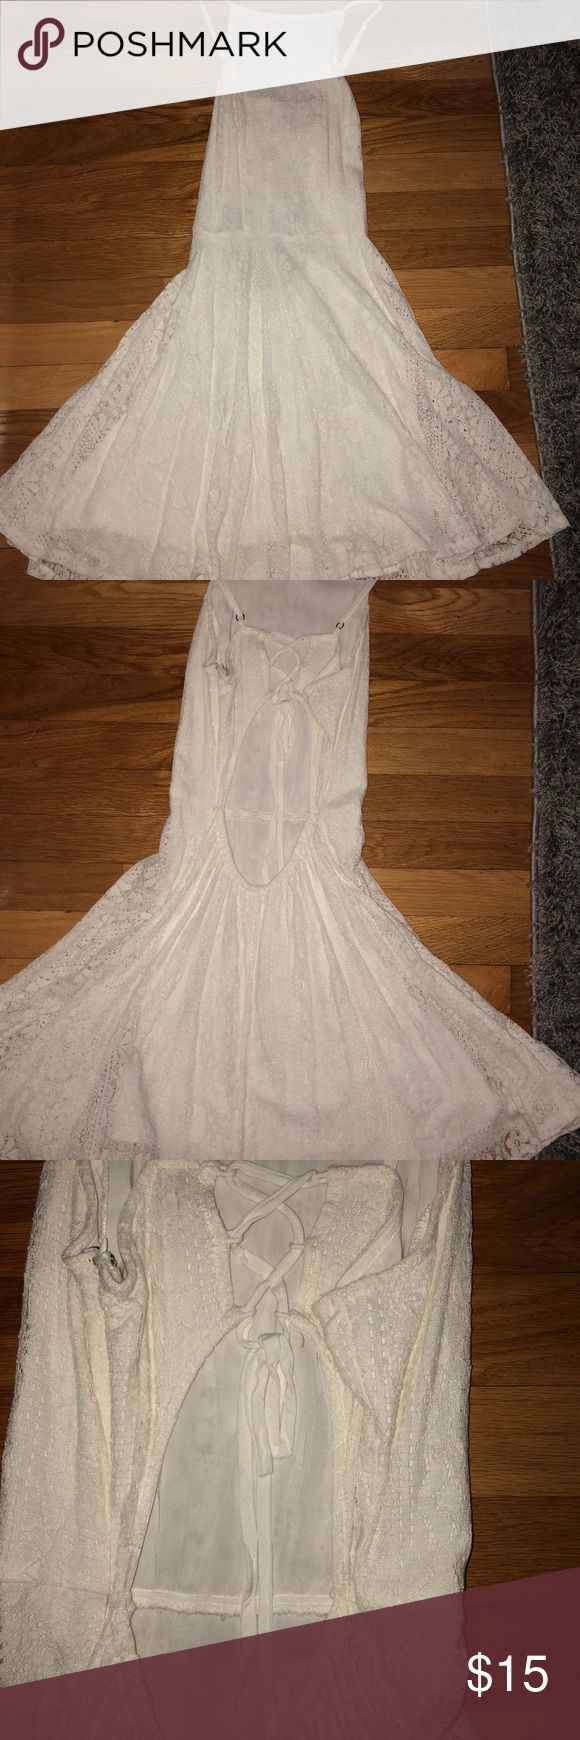 Hollister Dress Off-white/cream lace Hollister dress in size women's large. Runs small - I am typically a size medium and this fit me perfectly. Double-lined. Top is form-fitting and bottom is loose and flows. Back is criss-crossed and open. Only worn once and in perfect condition. Hollister Dresses